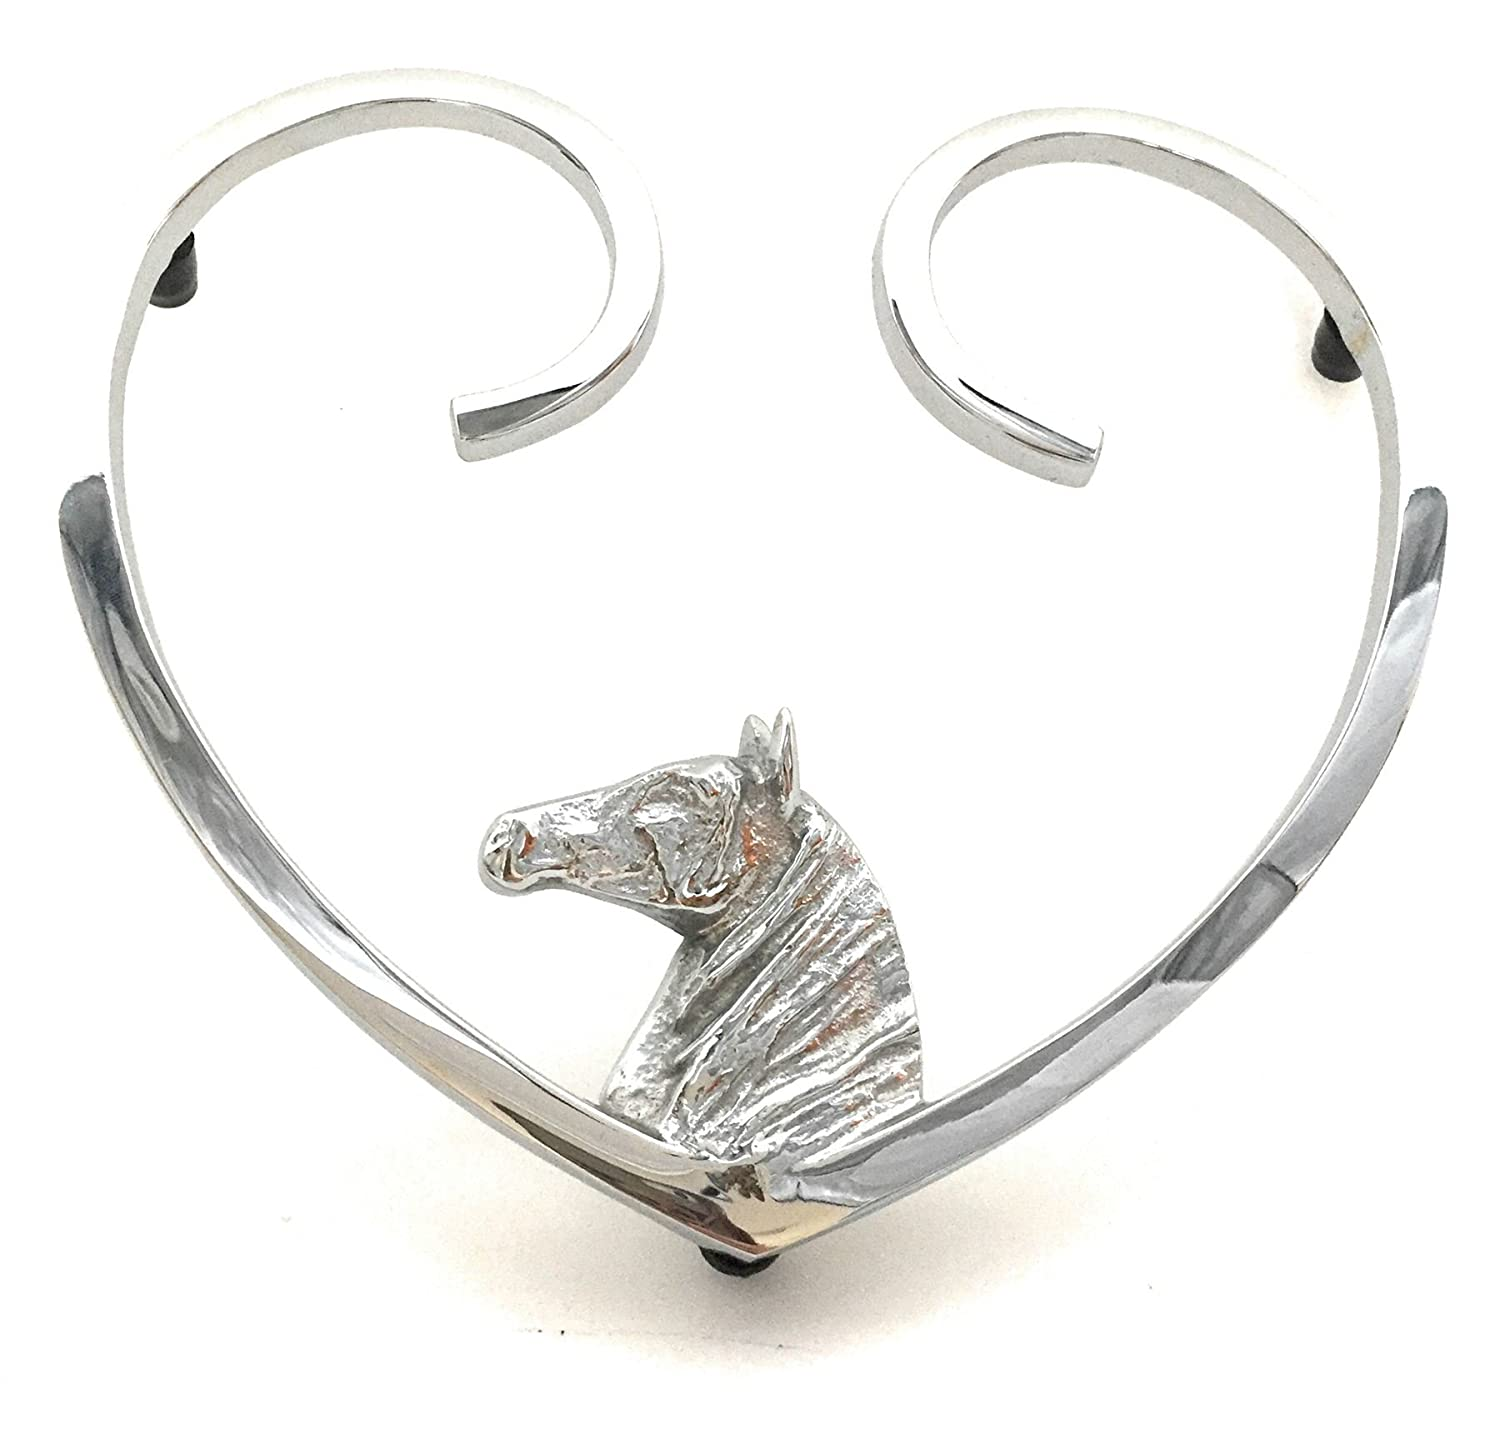 Horse Heart Trivet - Bright Chrome Black Country Metal Works